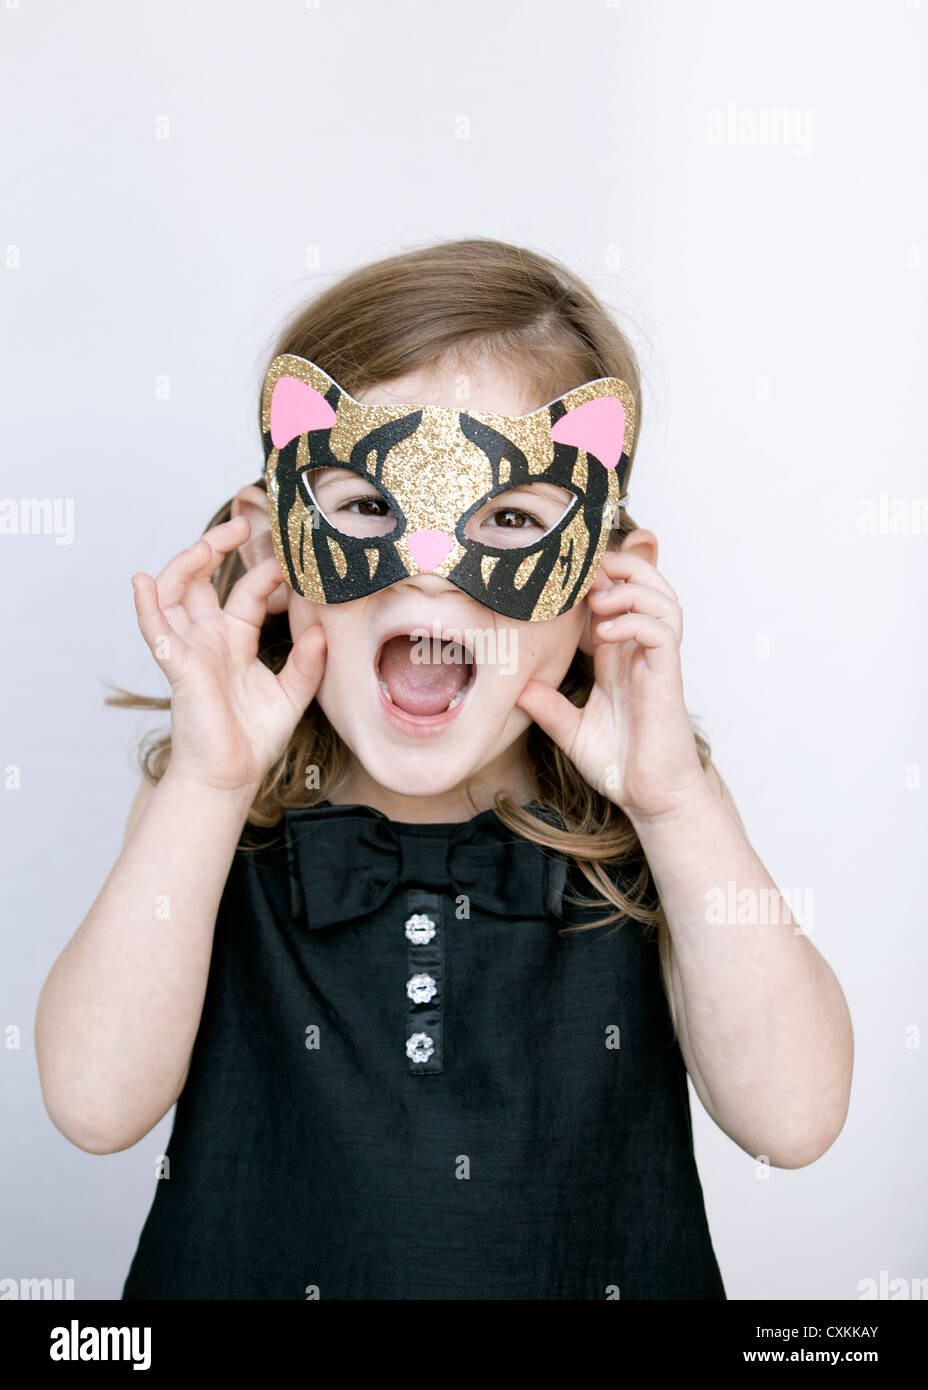 Petite fille avec tiger mask Photo Stock